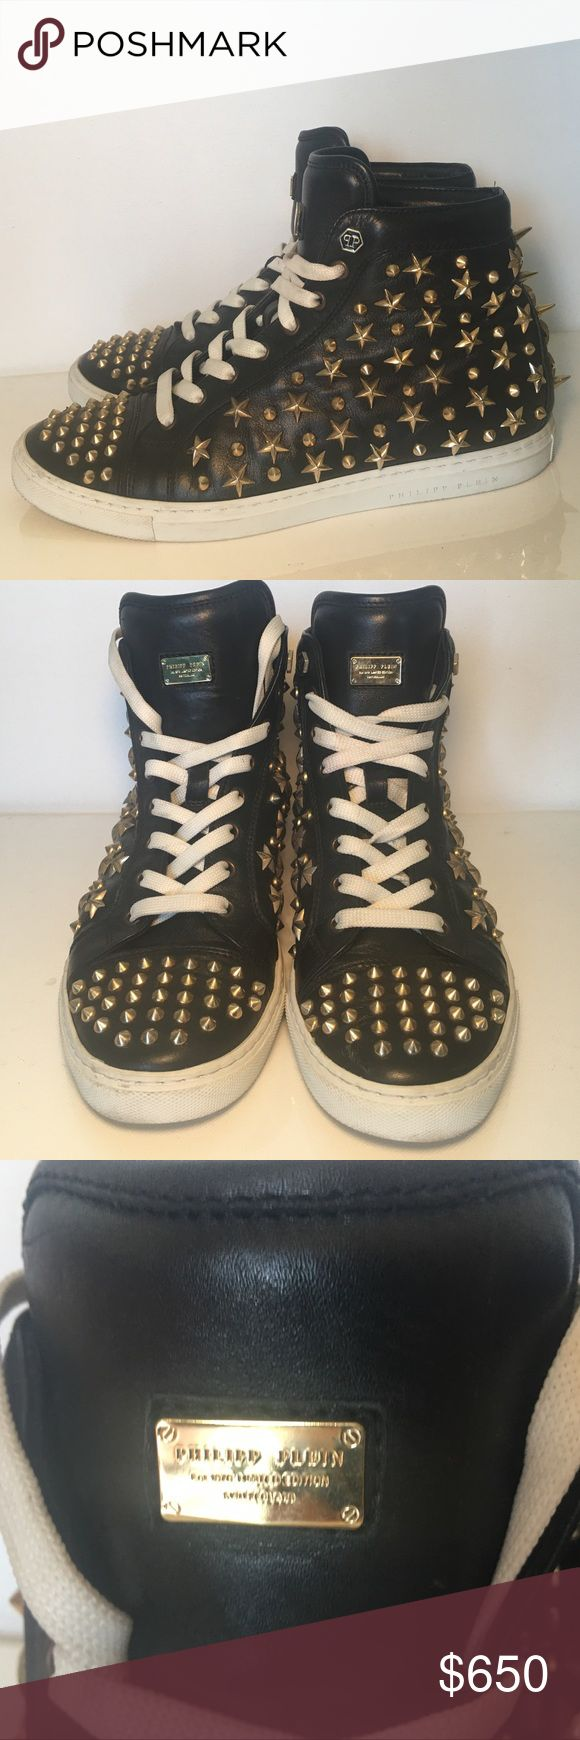 "PHILIPP PLEIN Est 1978 Limited Edition Sneaker PHILIPP PLEIN Est 1978 Limited Edition Switzerland Studded Lace-Up High-Top Fashion Sneaker ""Stars and Studs"" 100% Authentic Italian size 39 fits true to size  Black leather sneaker featuring a round toe strap, contrast gold -tone stars and studs throughout , a gold brand plaque on the top and a contrasting leather sole. One stud missing on the back. Made in Italy 🇮🇹 Philipp Plein Shoes Sneakers"